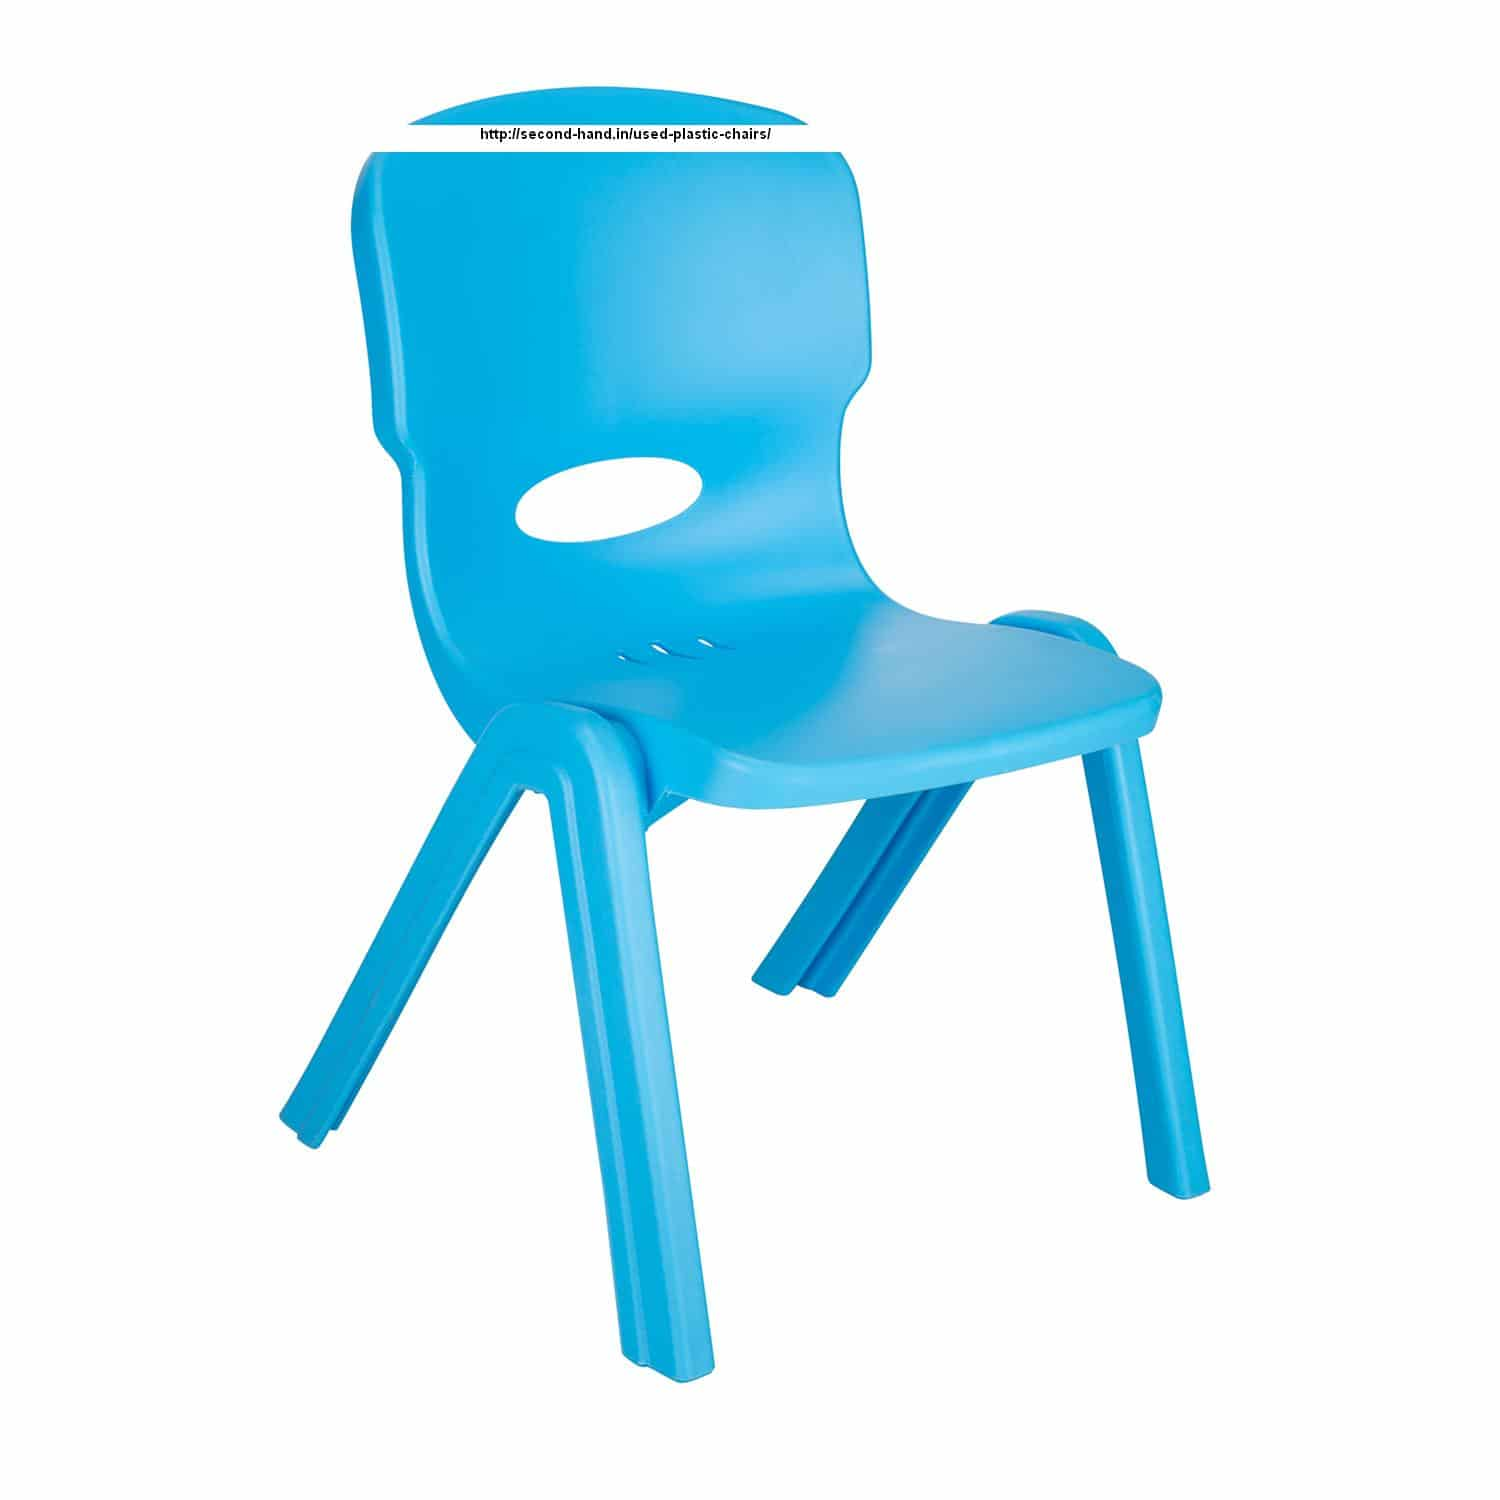 Second hand Plastic Chairs